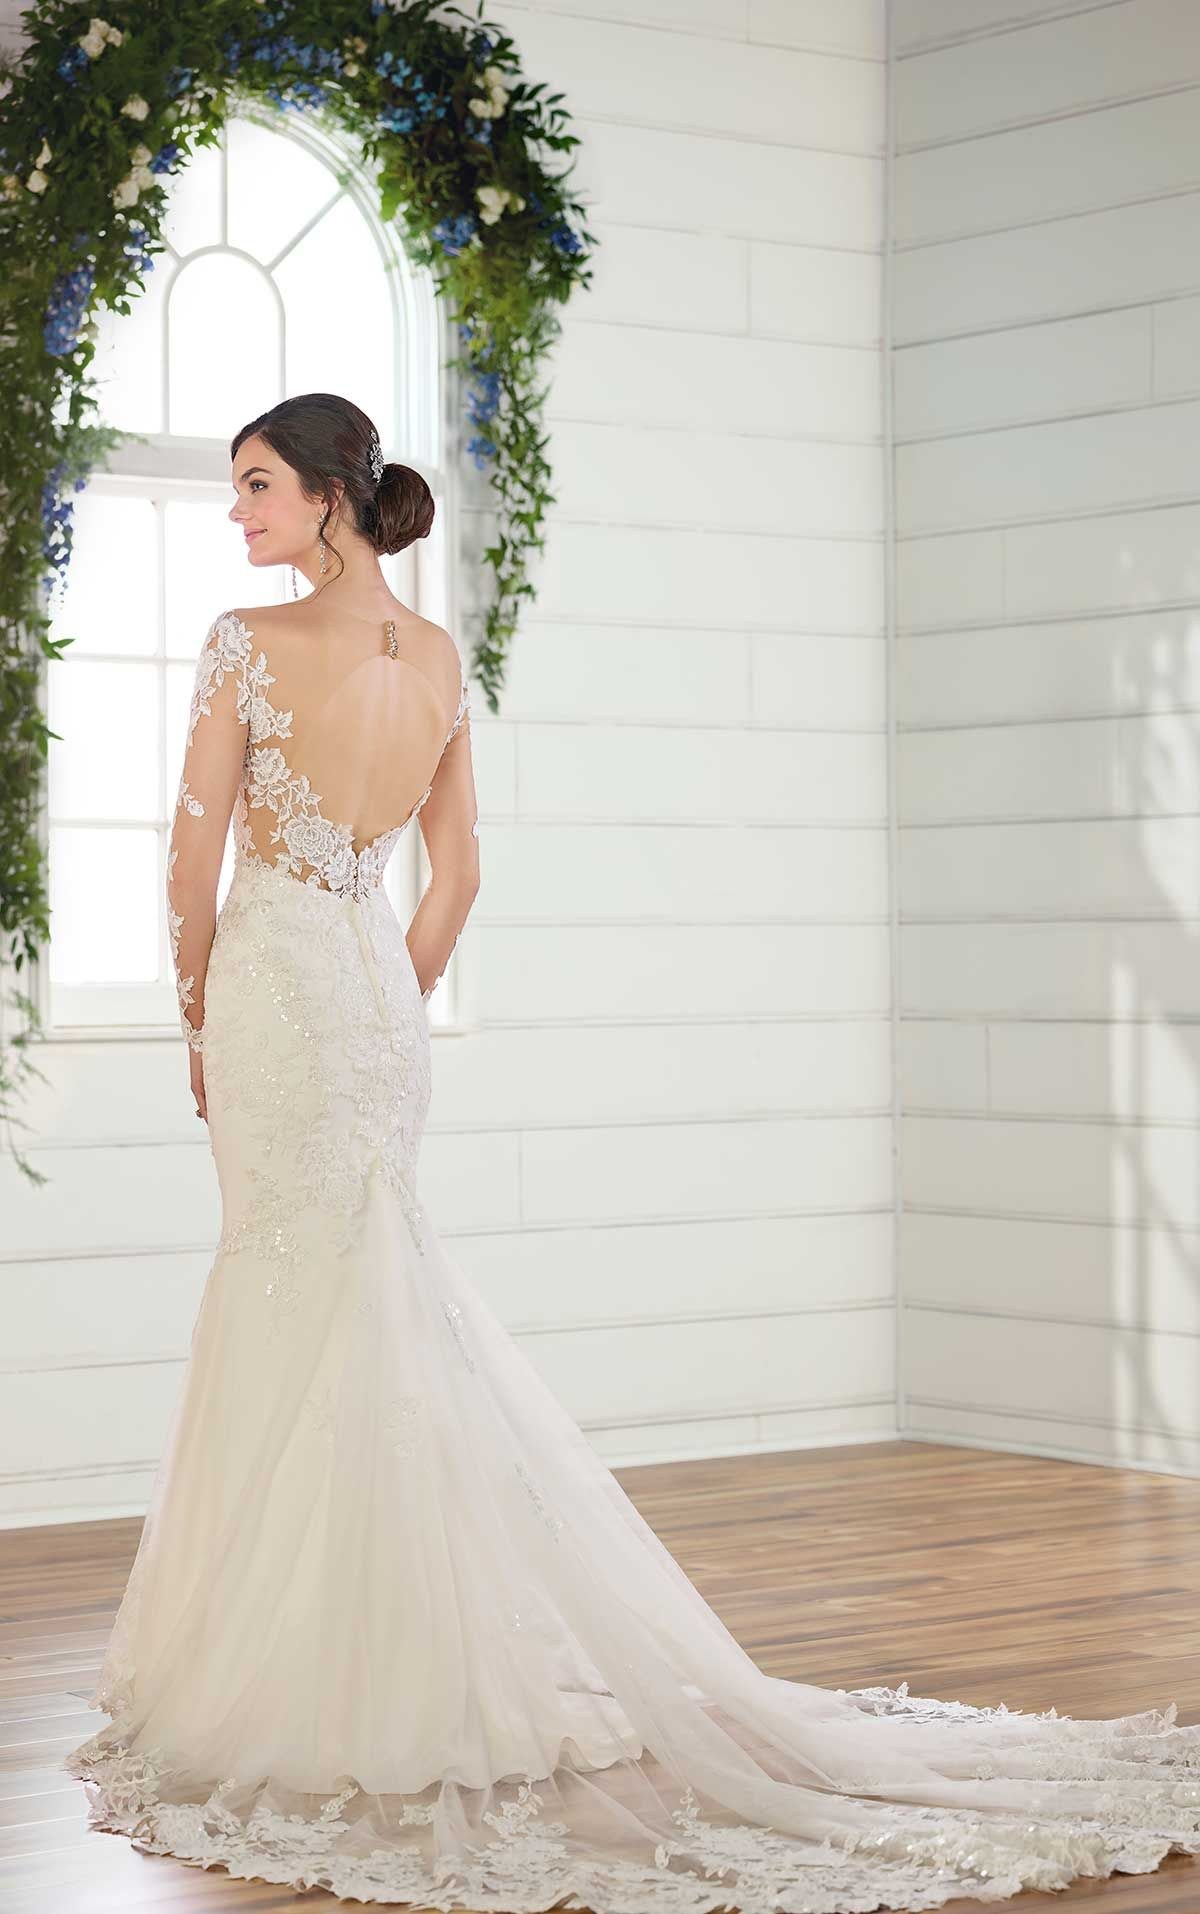 Lace wedding dress designers  Inventory   Dress available at Bride To Be Couture